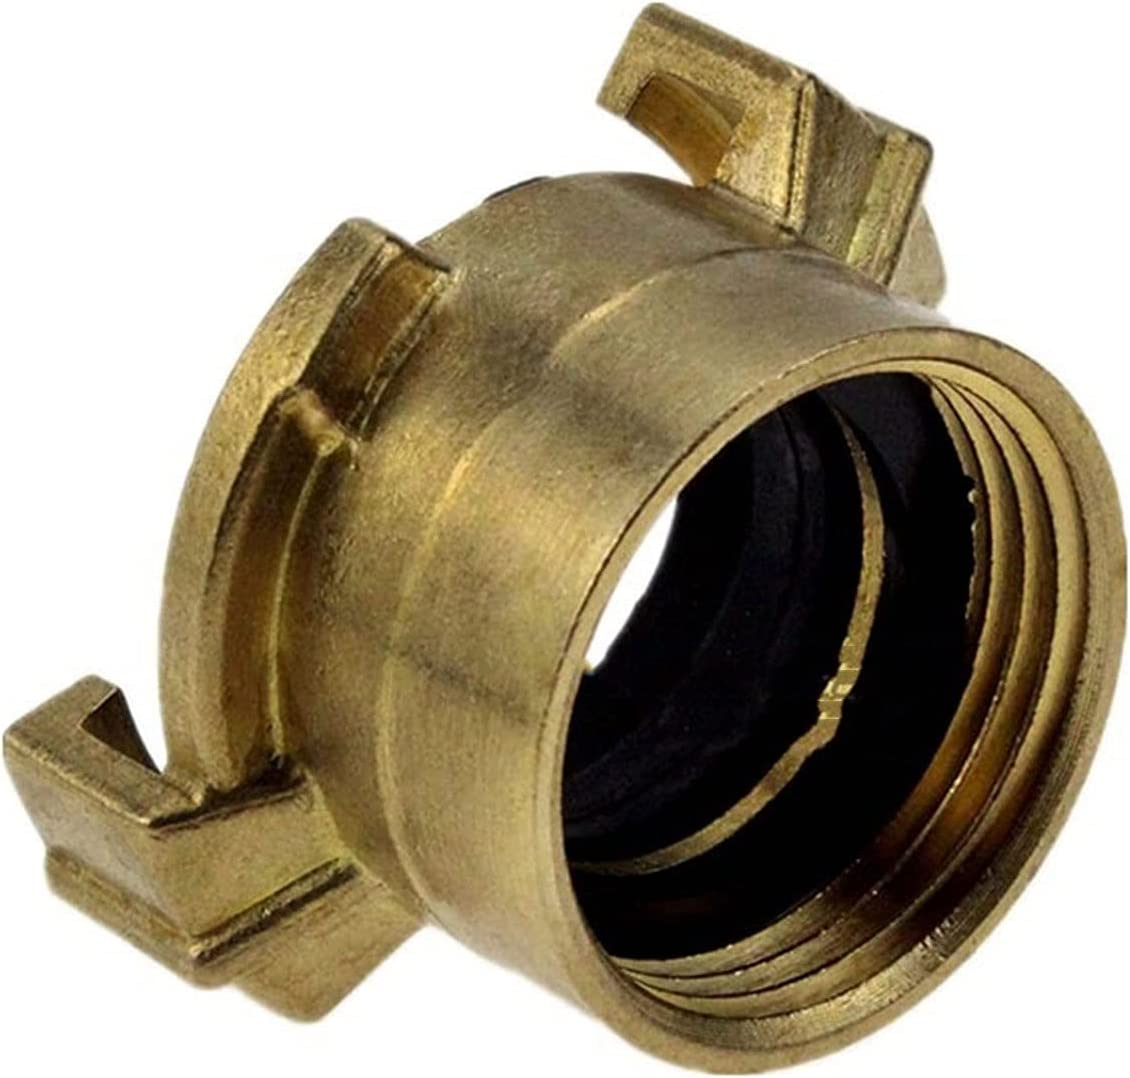 Bclla Zkenyao-Brass Max 88% OFF Connector Garden Hose Male Parts A surprise price is realized Thre Female